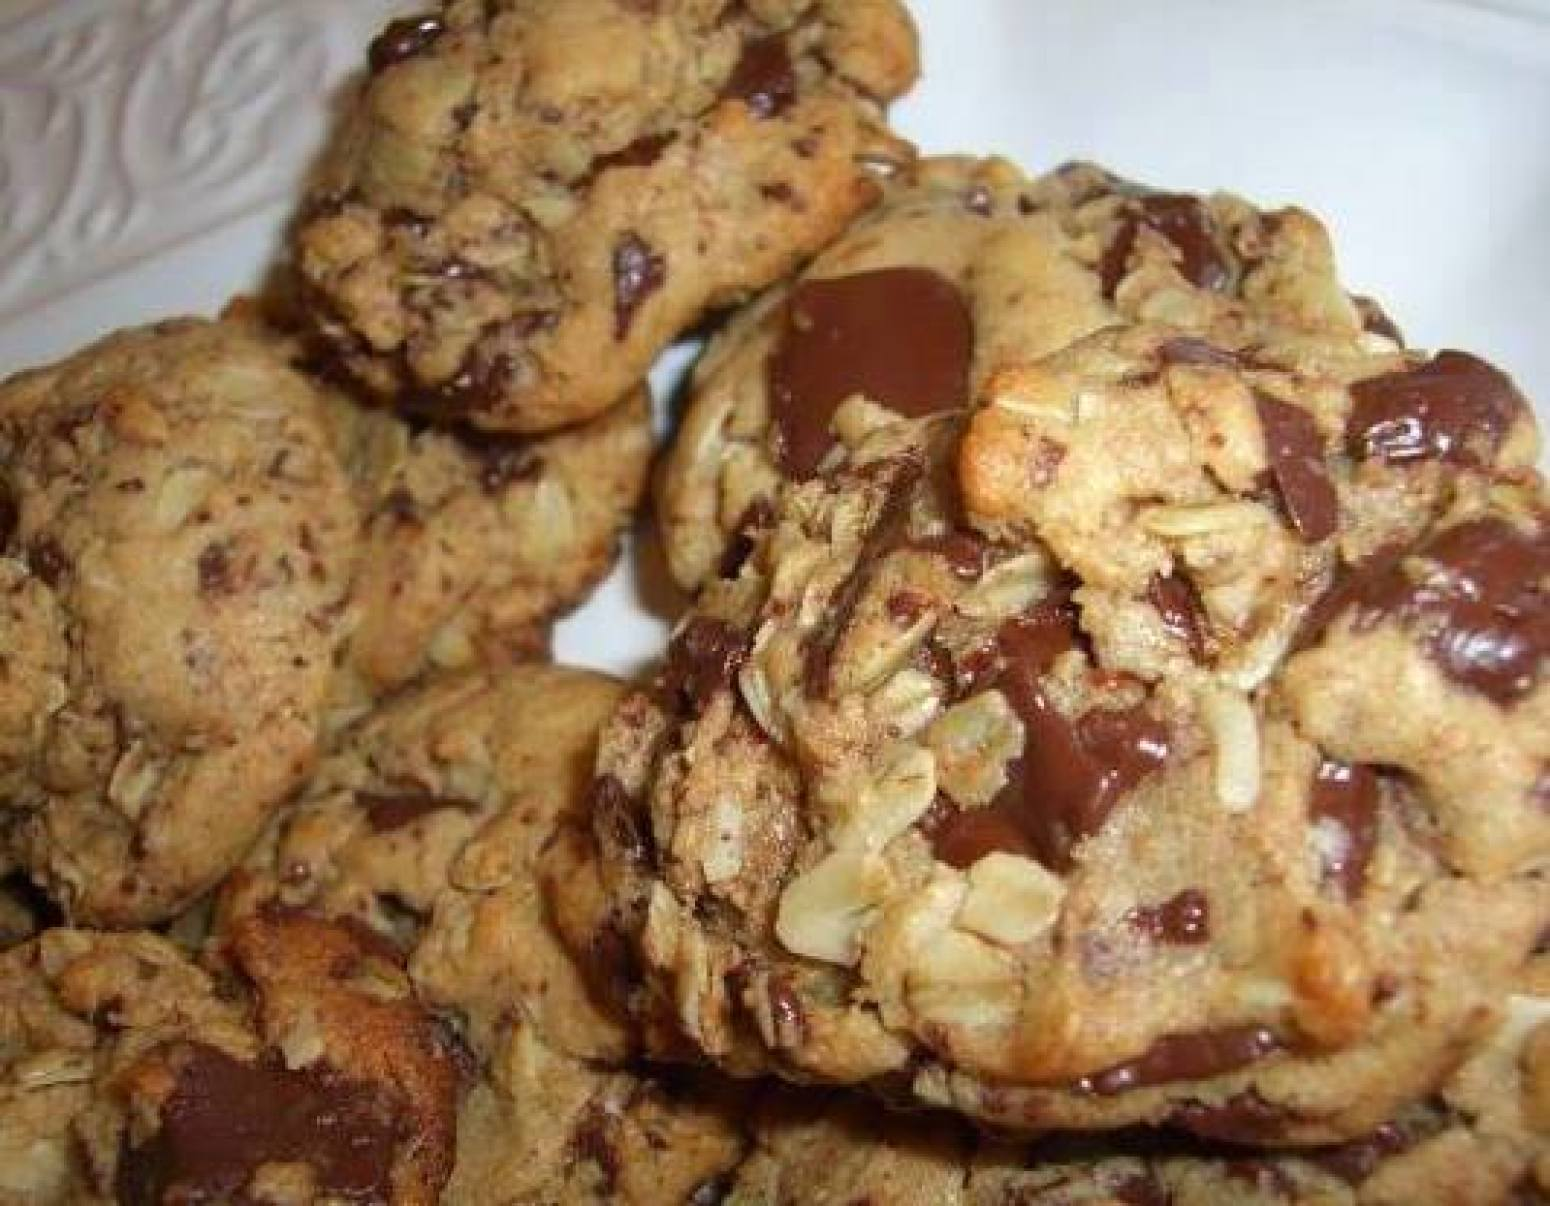 Peanut Butter Oatmeal Chocolate Chunk Cookies Recipe 5 | Just A Pinch ...